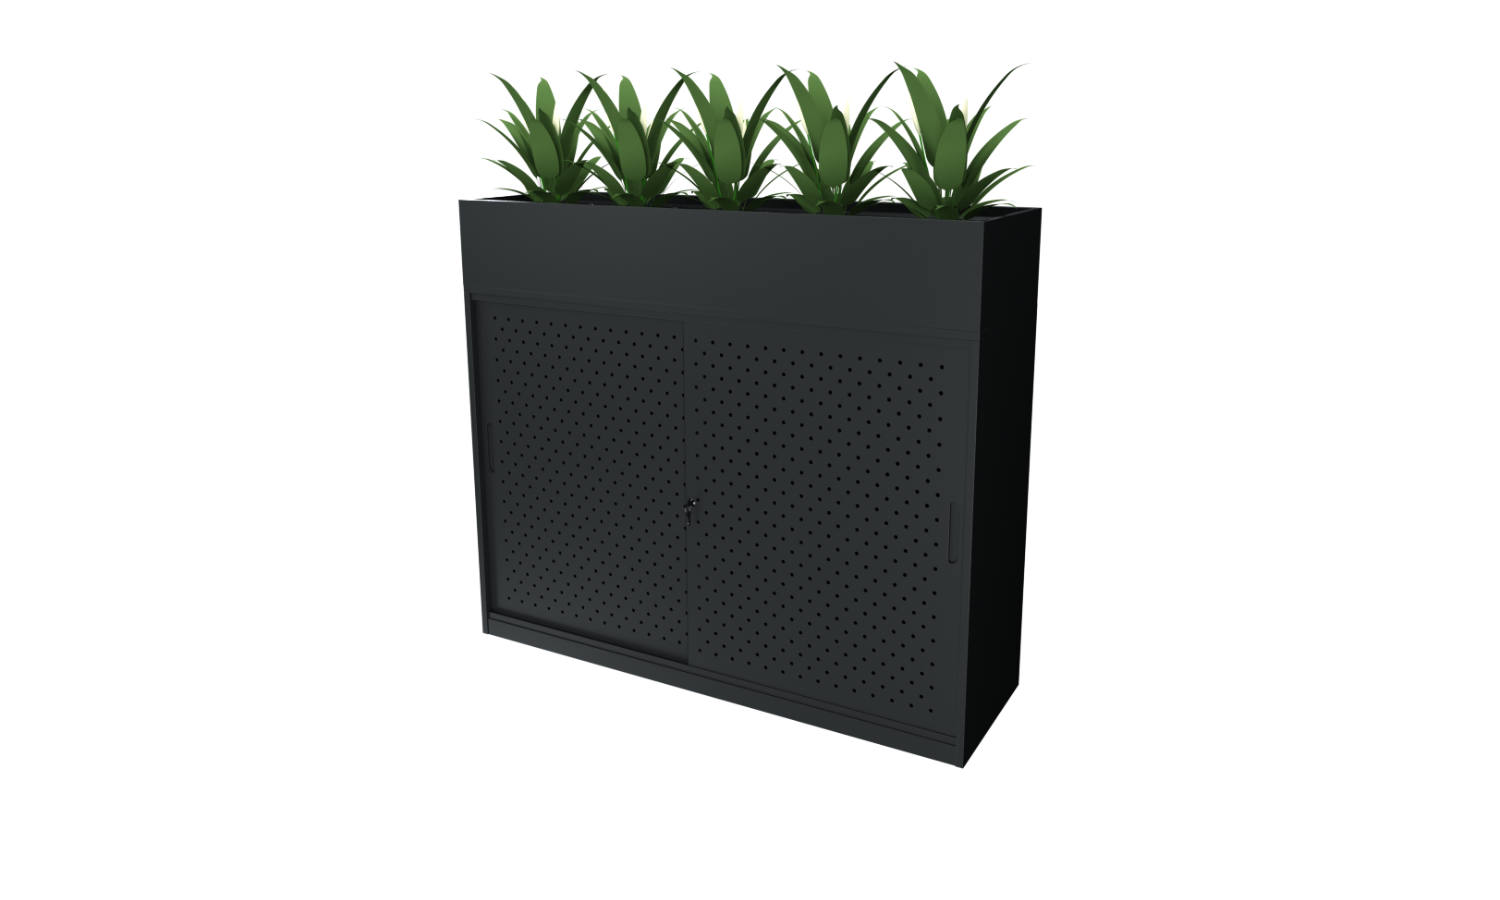 black sliding door storage cabinet with planter in black